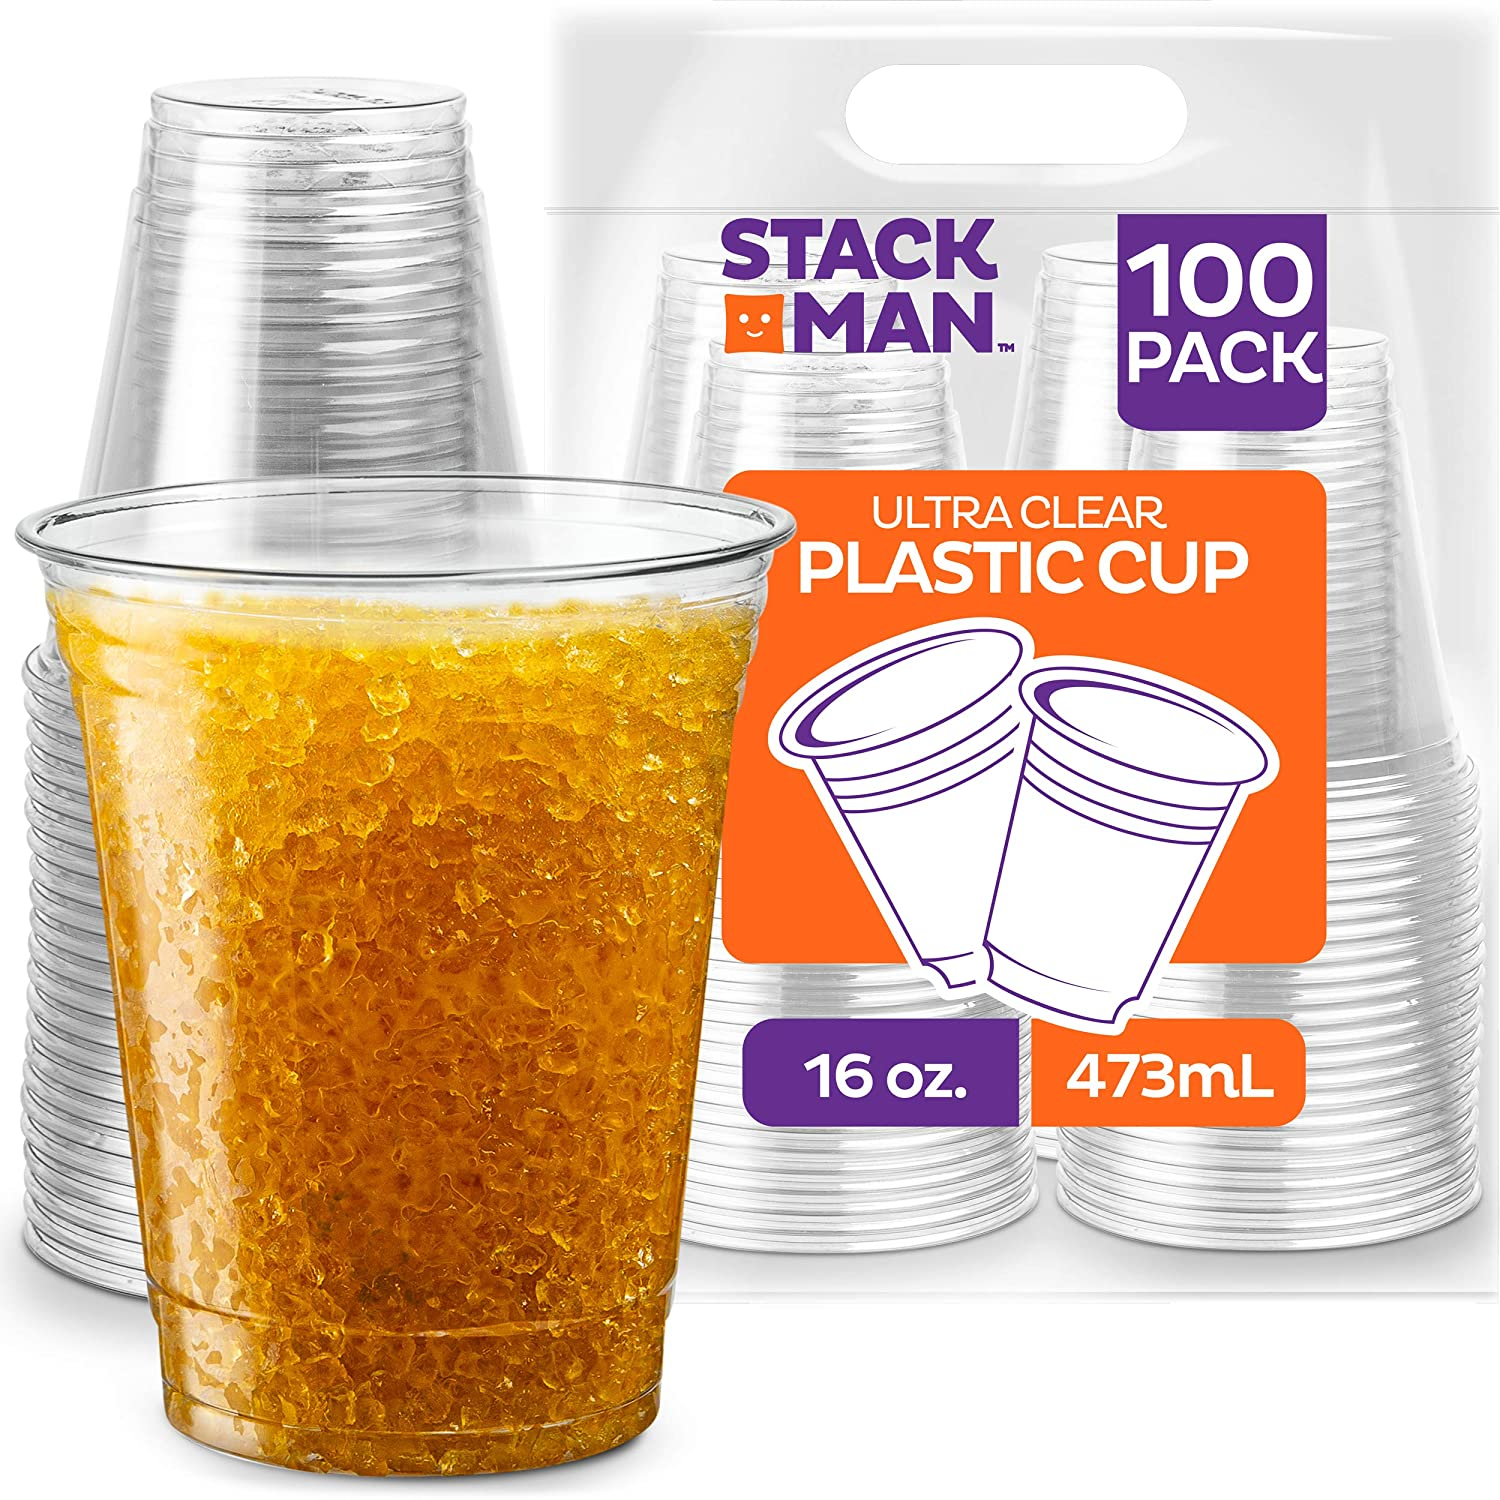 Stack Man [100 Pack - 16 oz.] Clear Disposable Plastic Cups PET Crystal Clear Disposable 16oz Plastic Cups